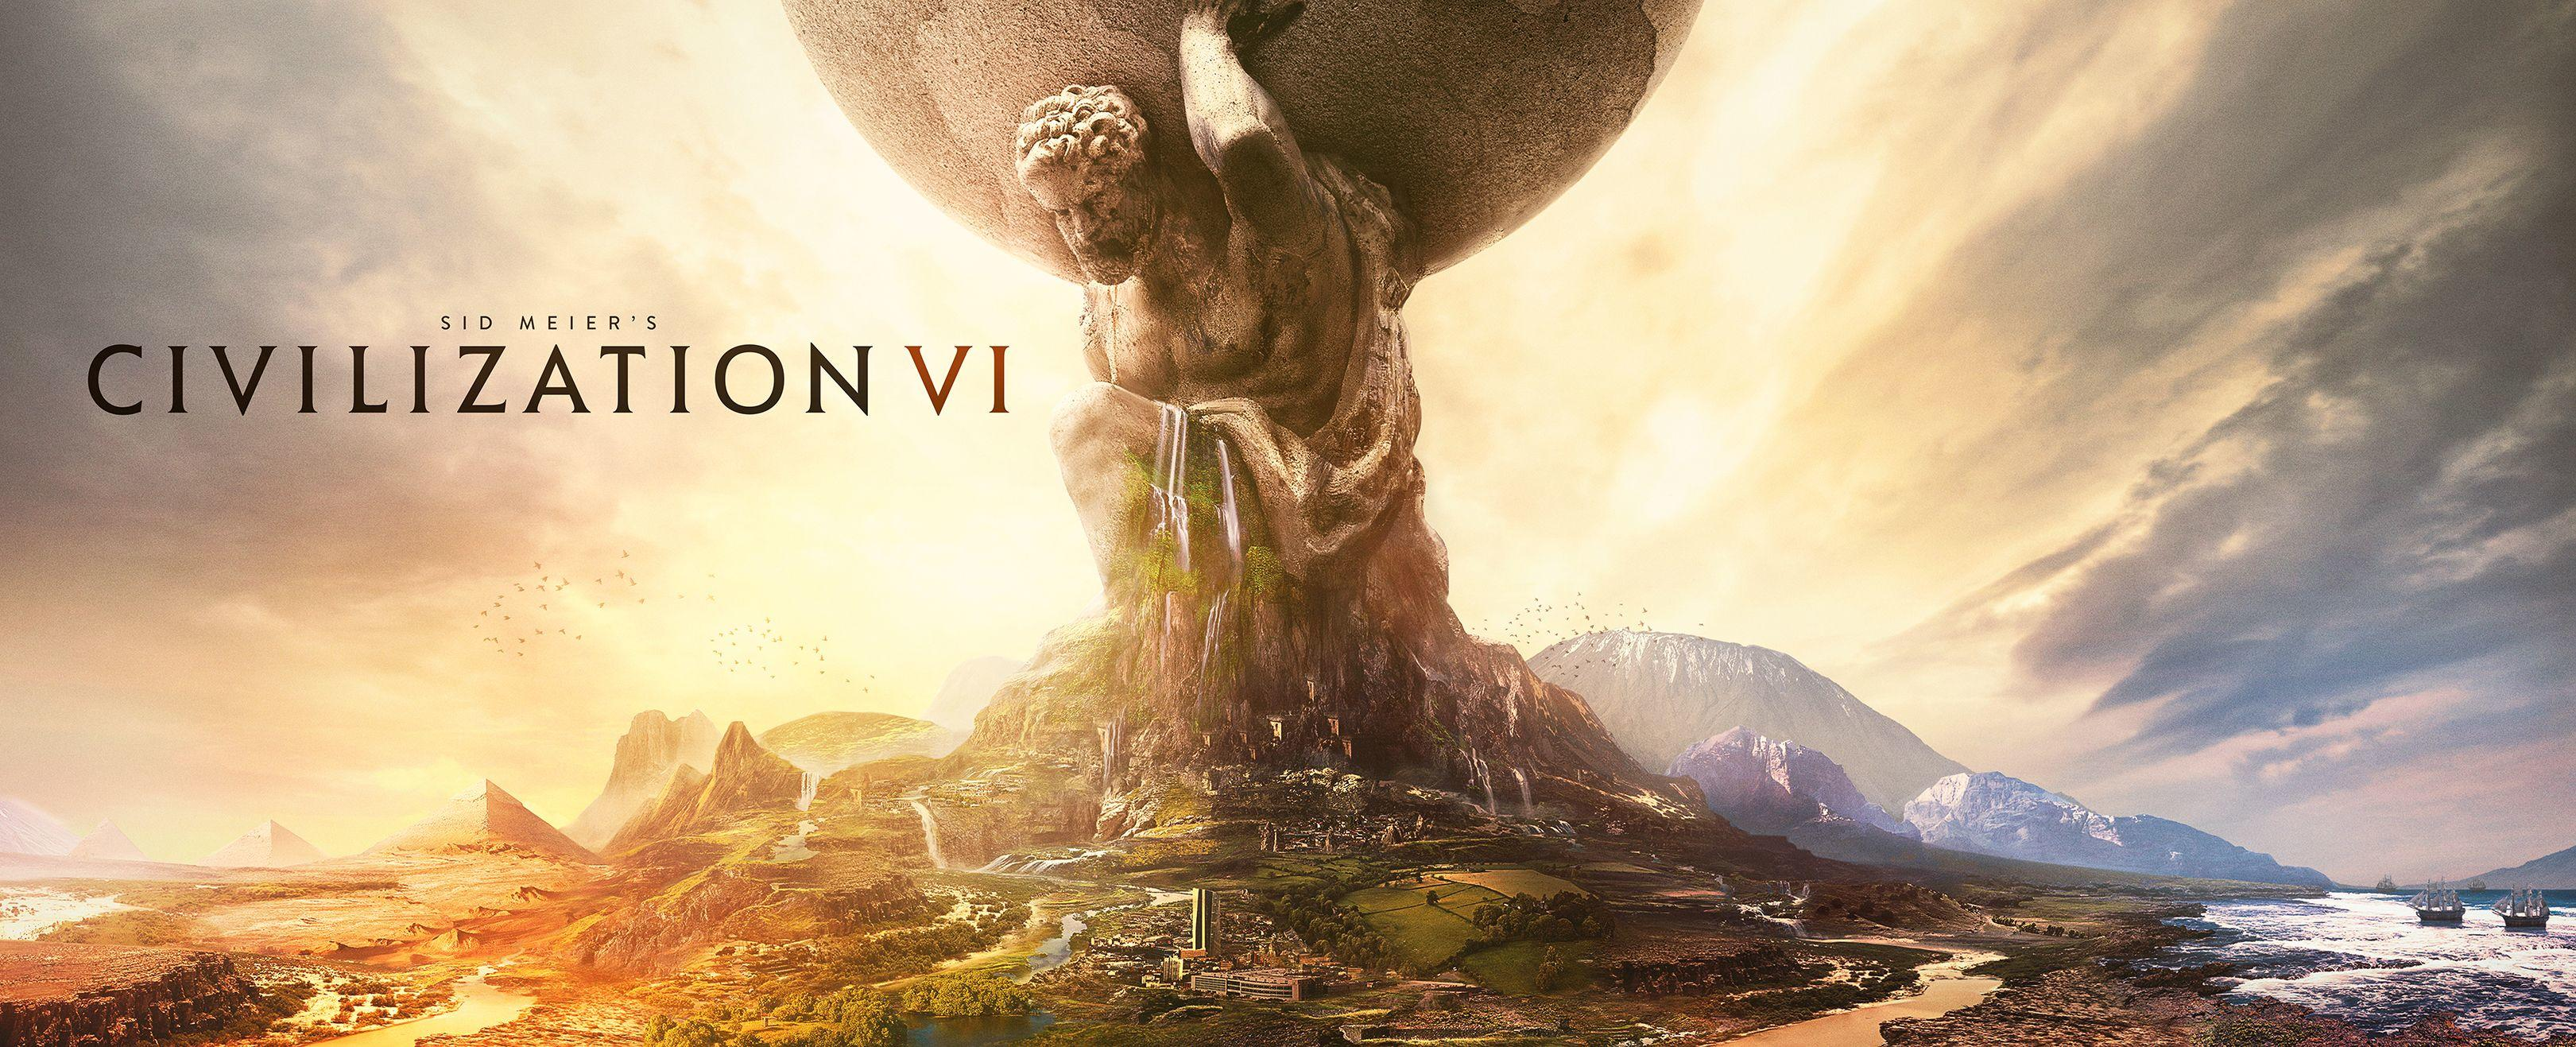 Civilization VI | TESO, Skyrim and RPG News and Forums